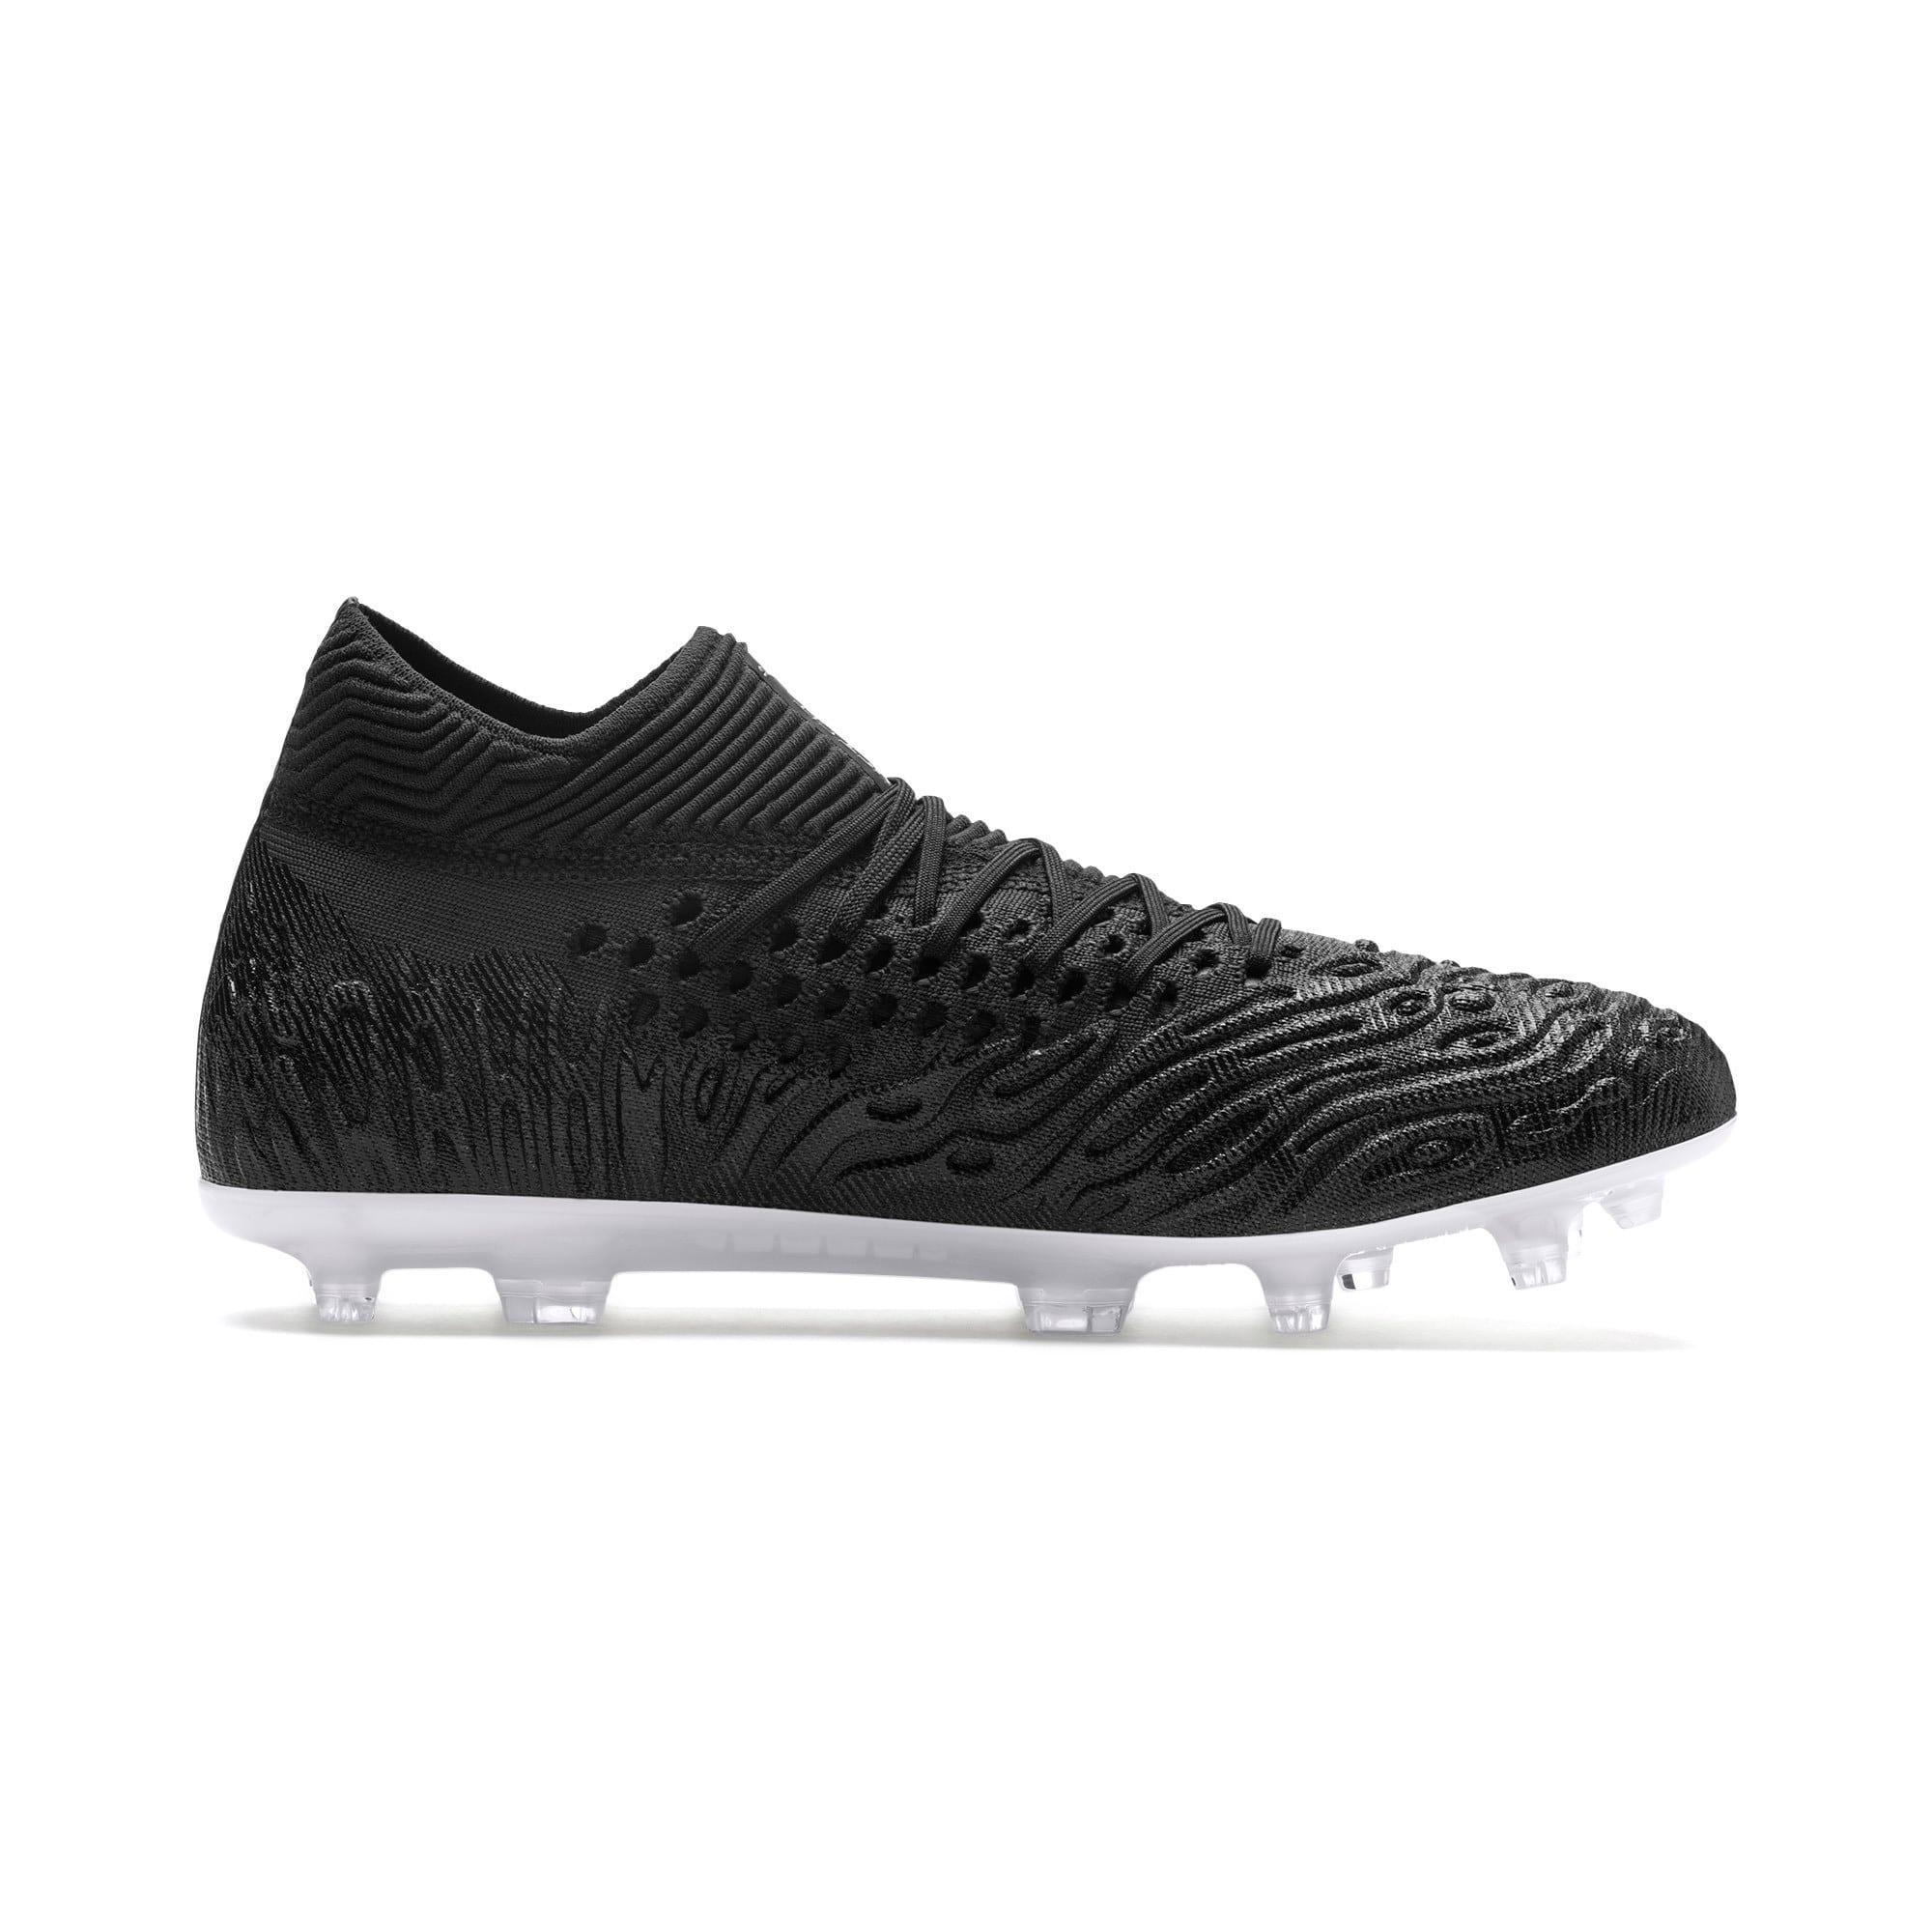 Thumbnail 5 of FUTURE 19.1 NETFIT FG/AG Men's Soccer Cleats, Black-Black-White, medium